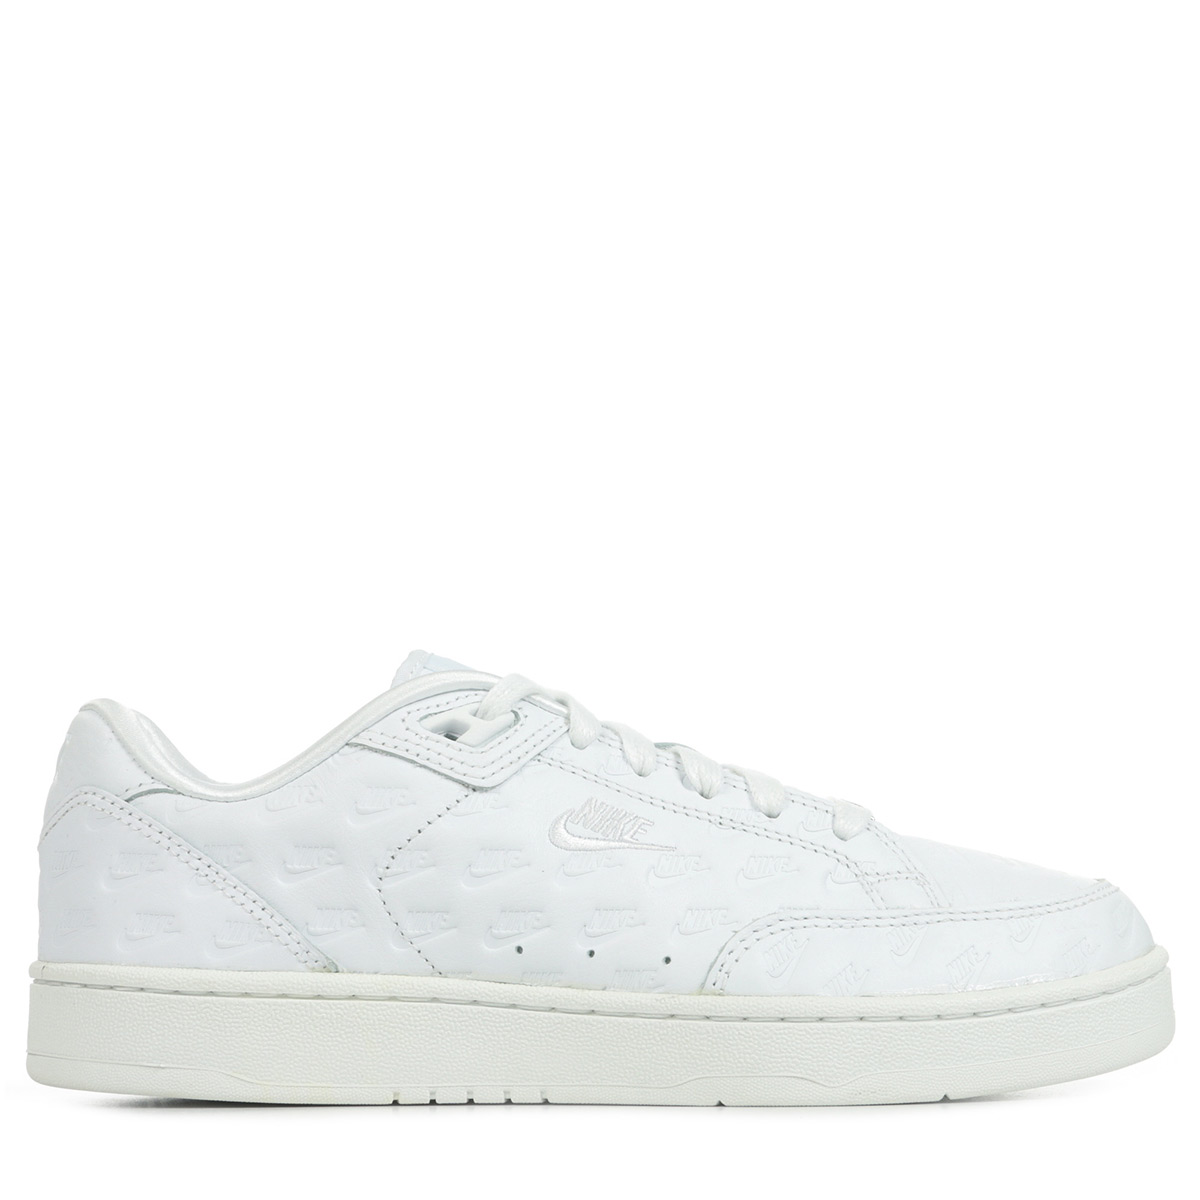 new concept bcc50 a47c0 Nike Grandstand II Pinnacle QS ...